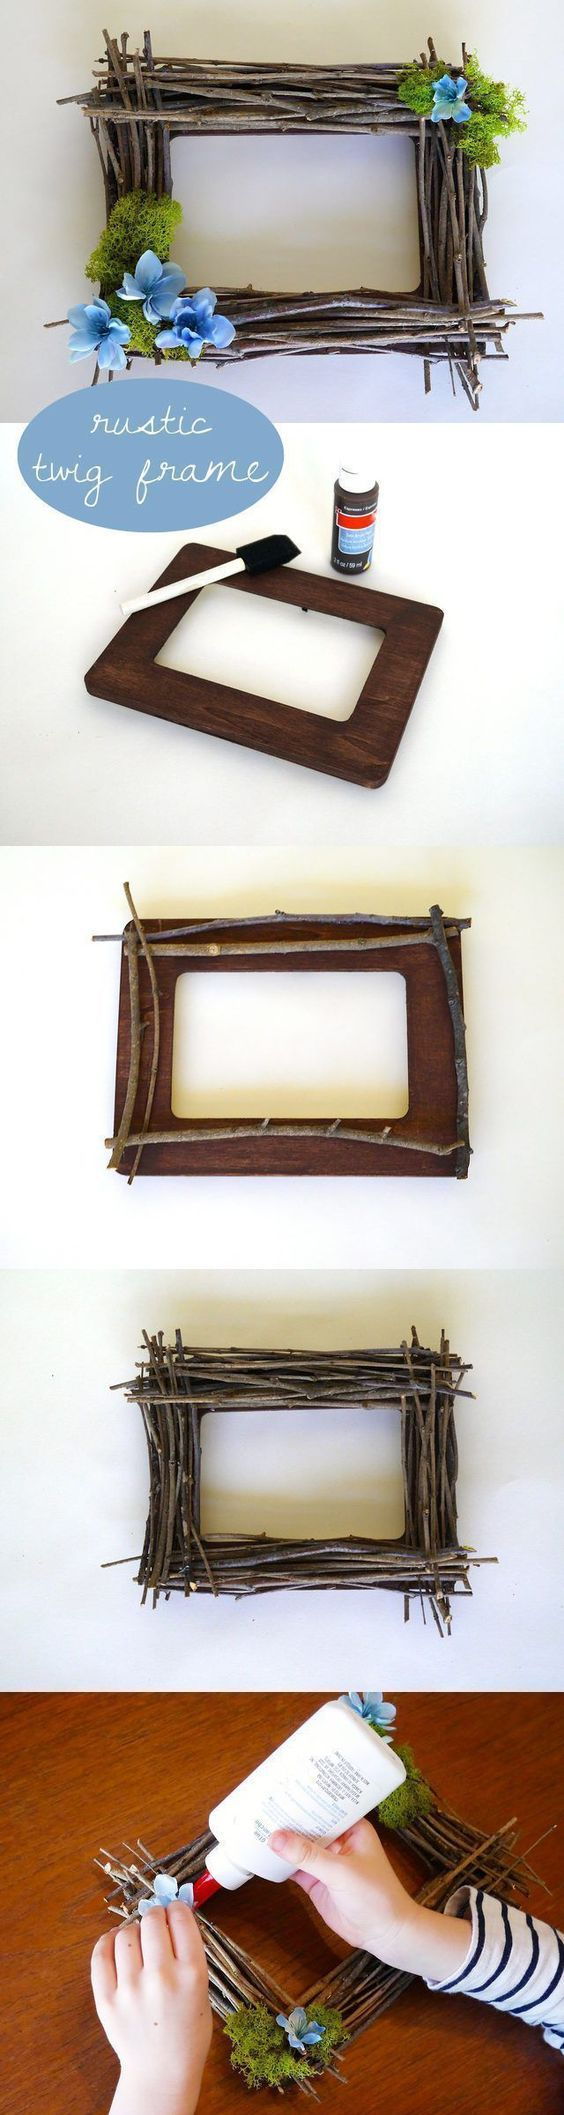 5. A twig frame is a beautiful, rustic way to showcase your most favorite photos. For some extra authenticity, choose twigs from your own backyard or neighborhood. It works well as a group activity and can also be made kid-friendly. |  EHOW